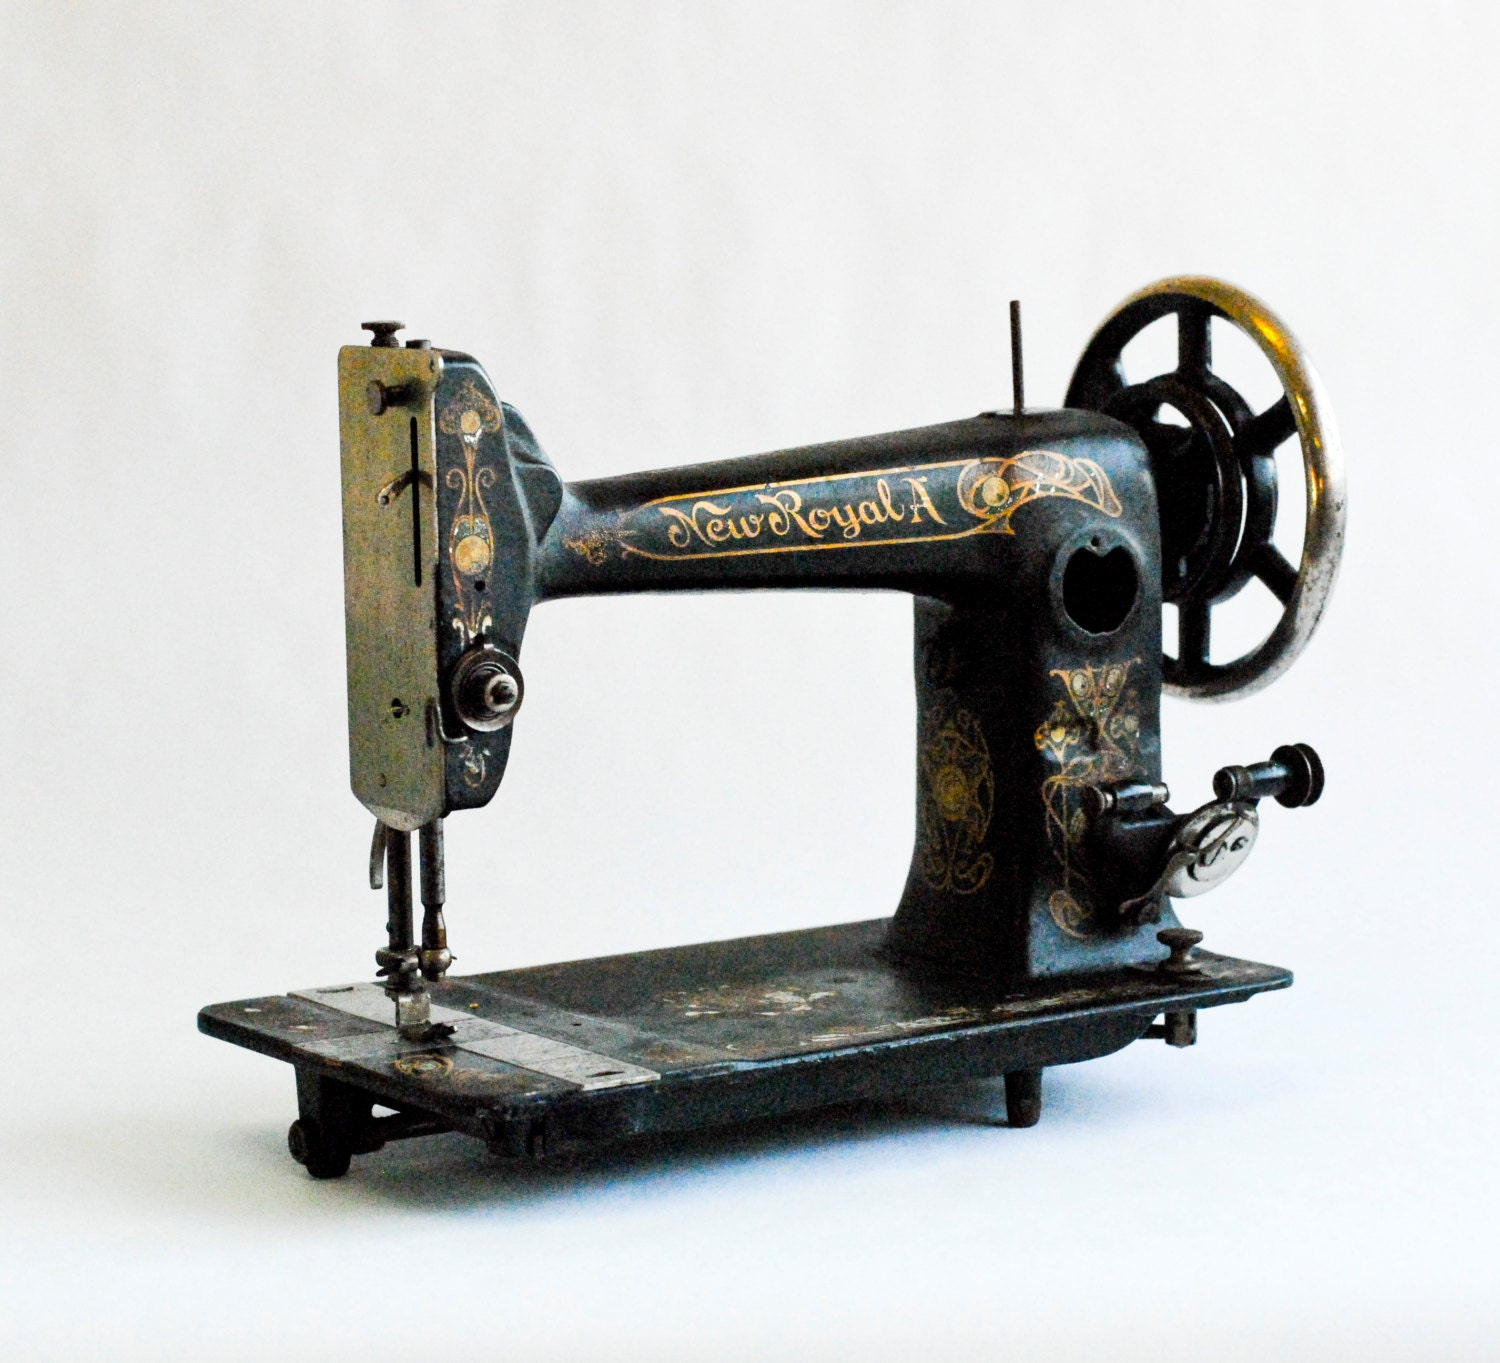 Antique Old Vintage Sewing Machine For Interior Design 1896